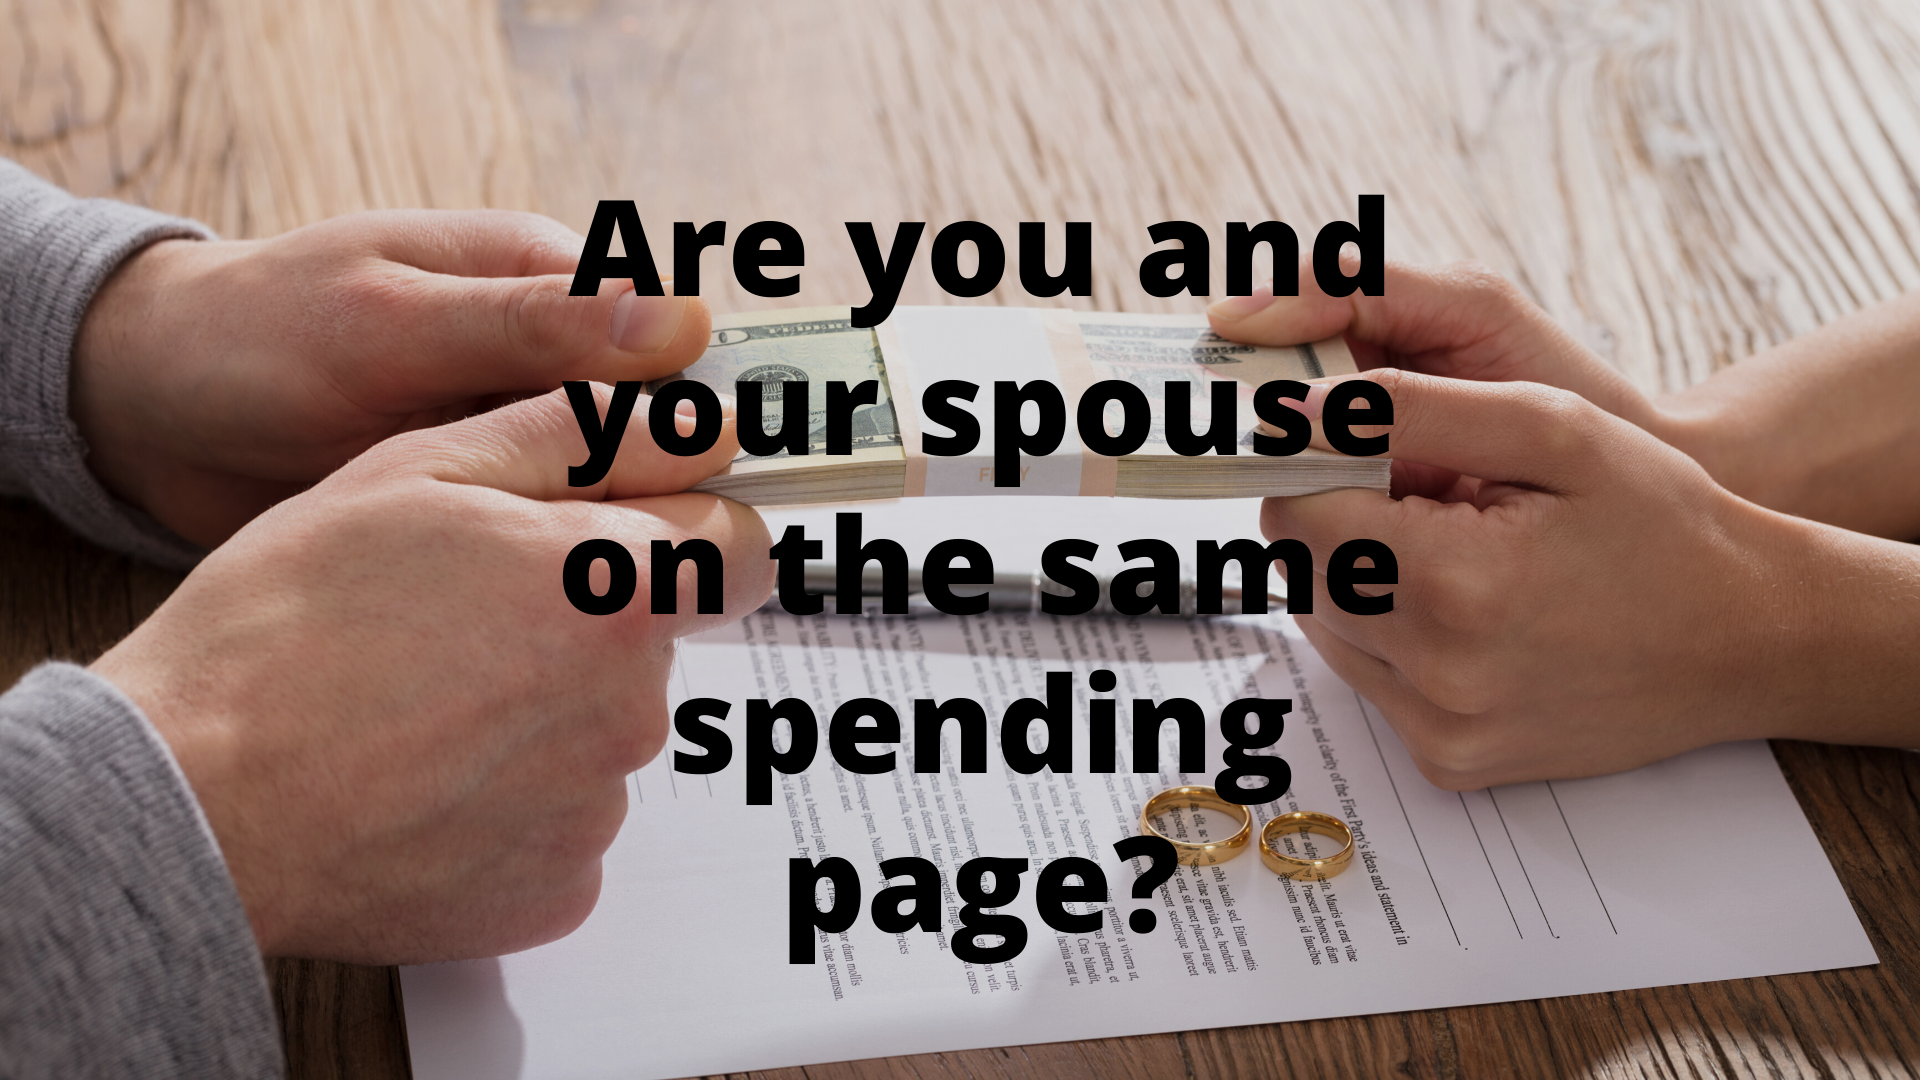 Spending: What to Do When You and Your Spouse are NOT on the Same Page?